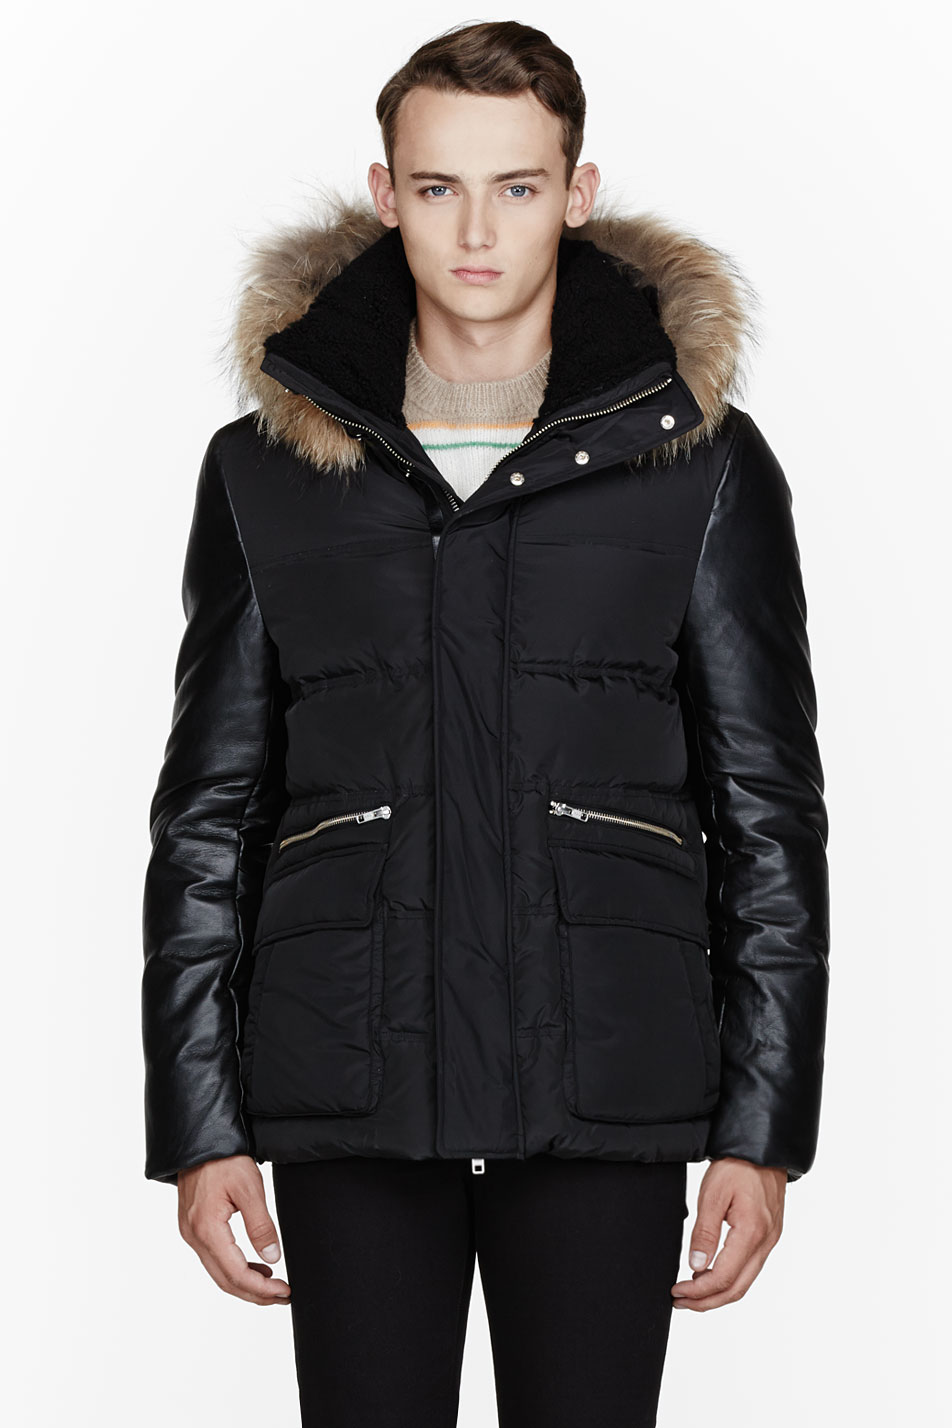 Mackage Black Leather and Fur Dennis Parka in Black for Men | Lyst